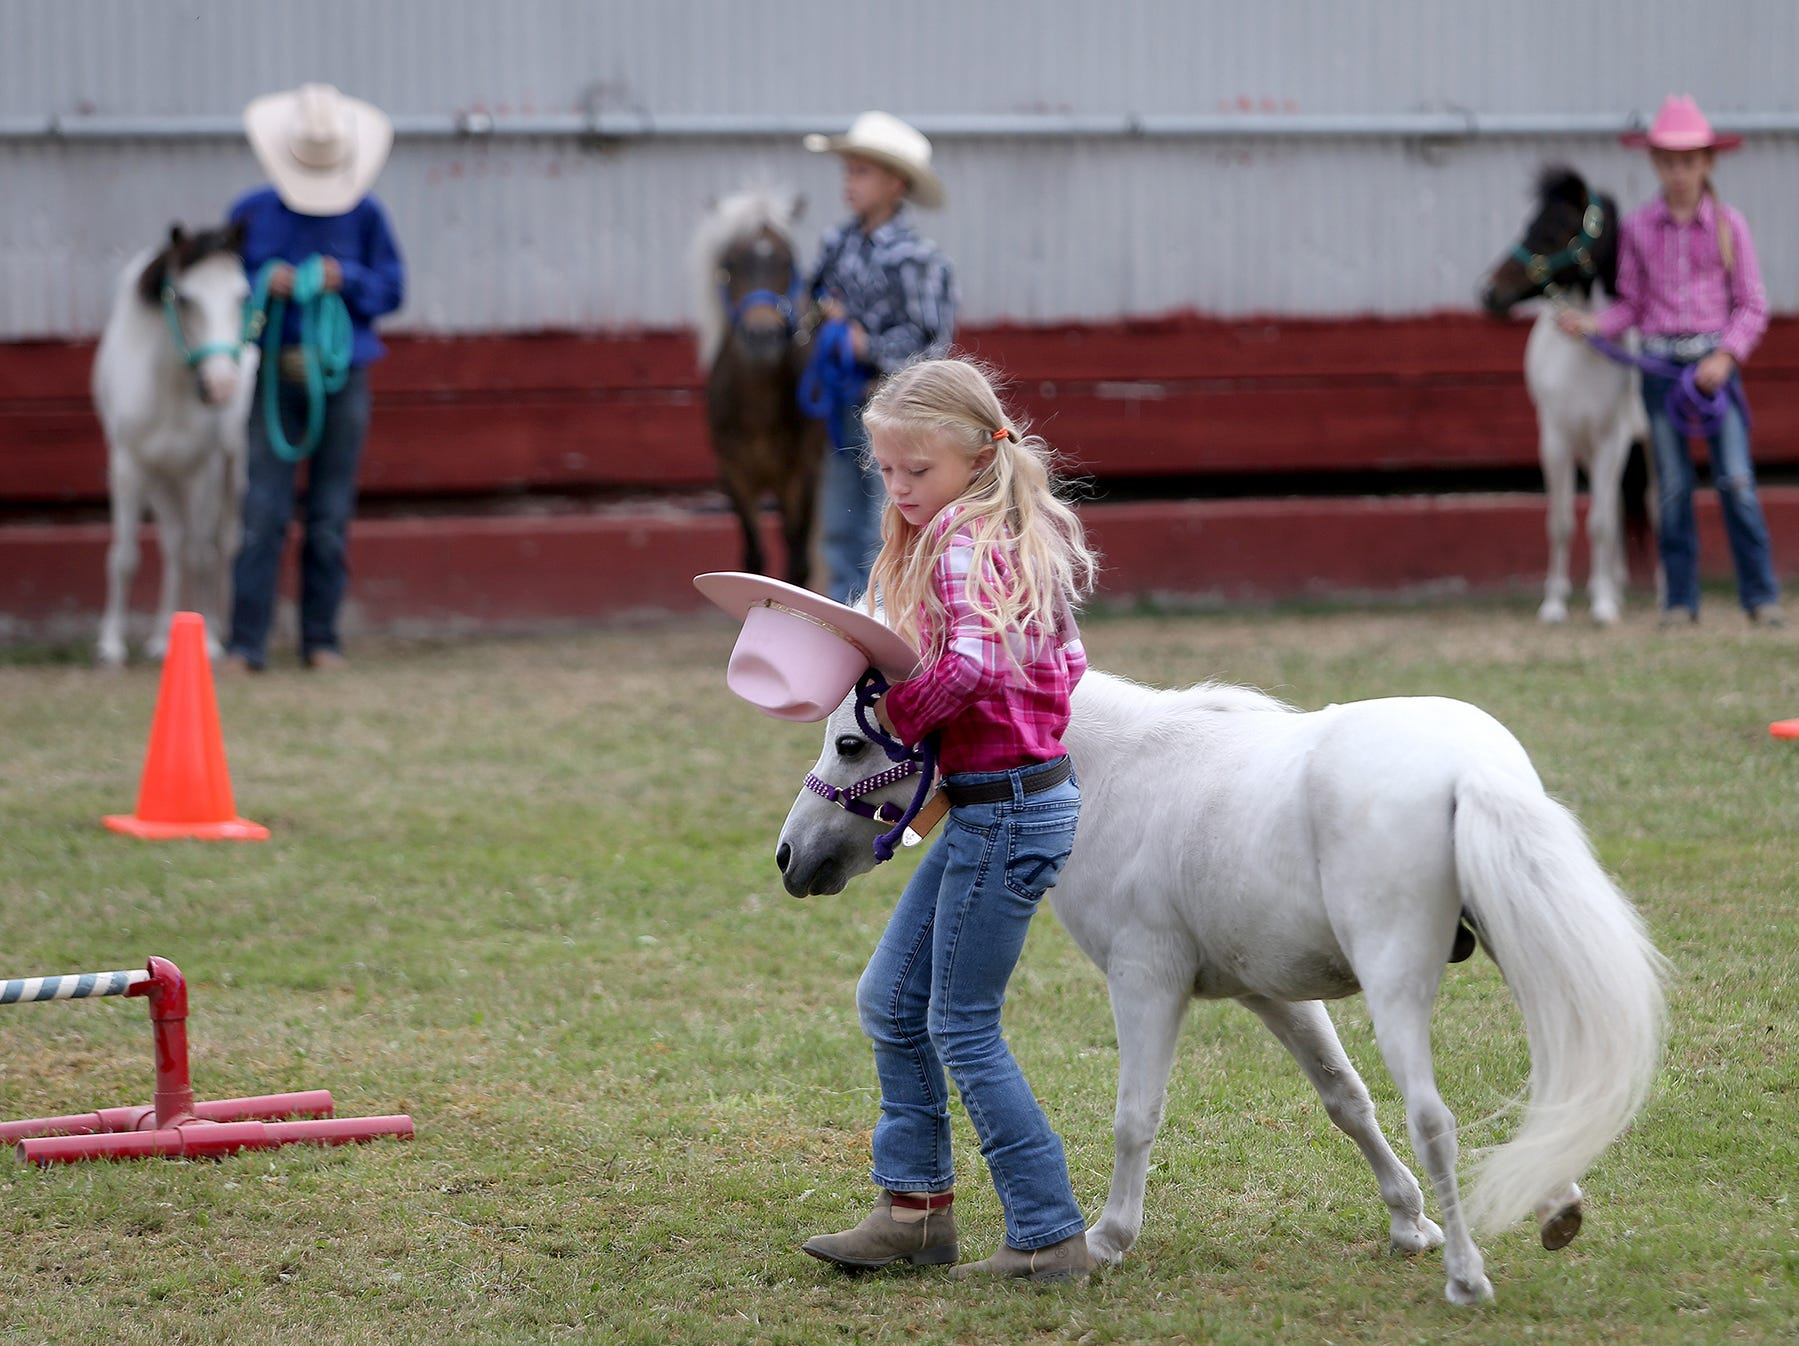 Holly Lowe loses her cowgirl hat as she runs with Spanky in the mini horse jumping open 10 & under amateur at the Kitsap County Fair & Stampede on Thursday, August 23, 2018, at the Kitsap County Fairgrounds.The fair goes from 10 a.m. until 10 p.m..